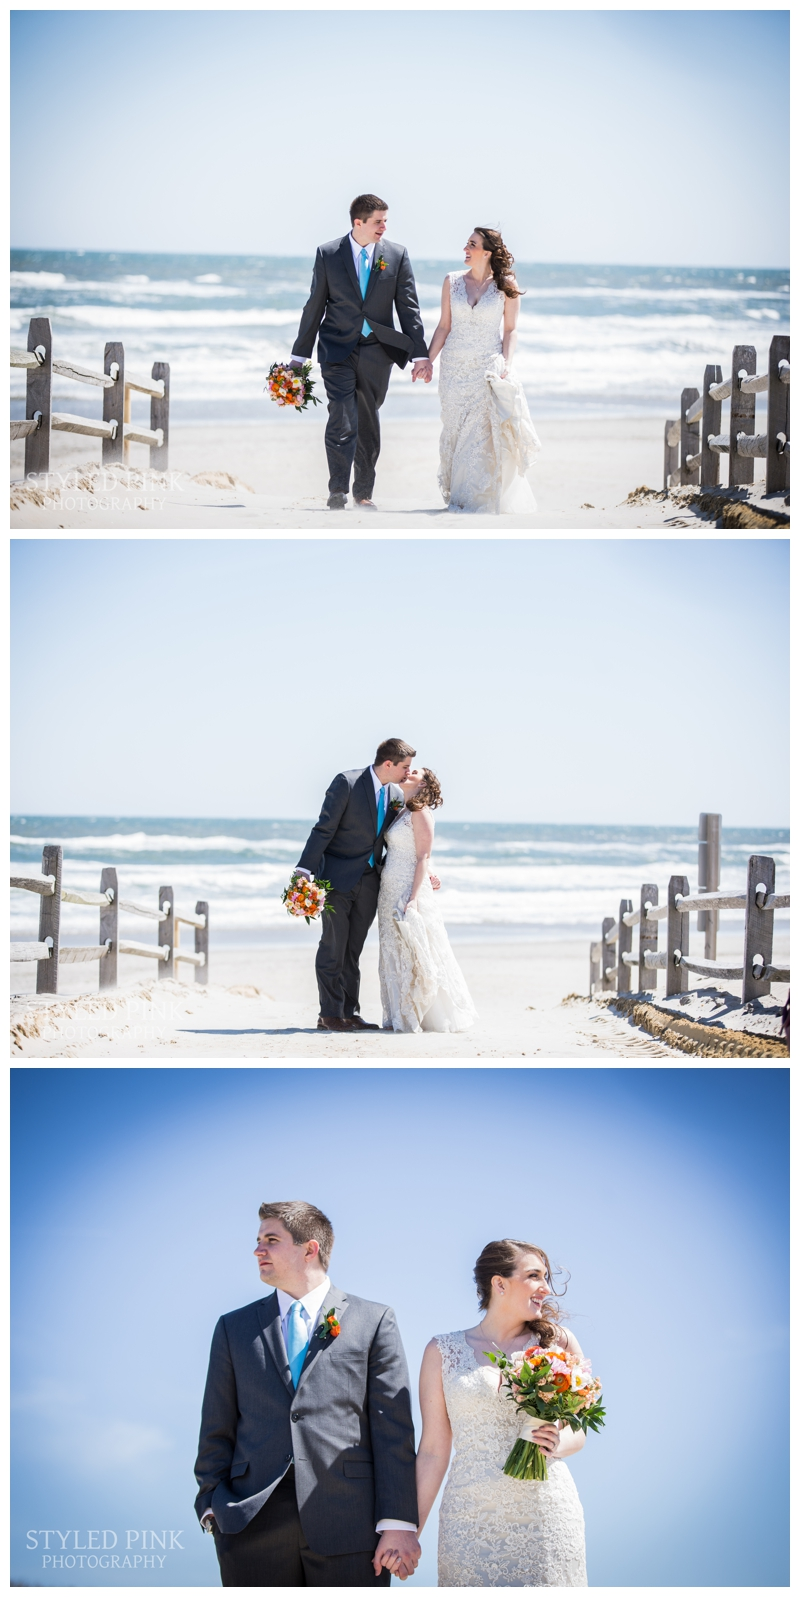 styled-pink-photography-windrift-avalon-nj-wedding-21